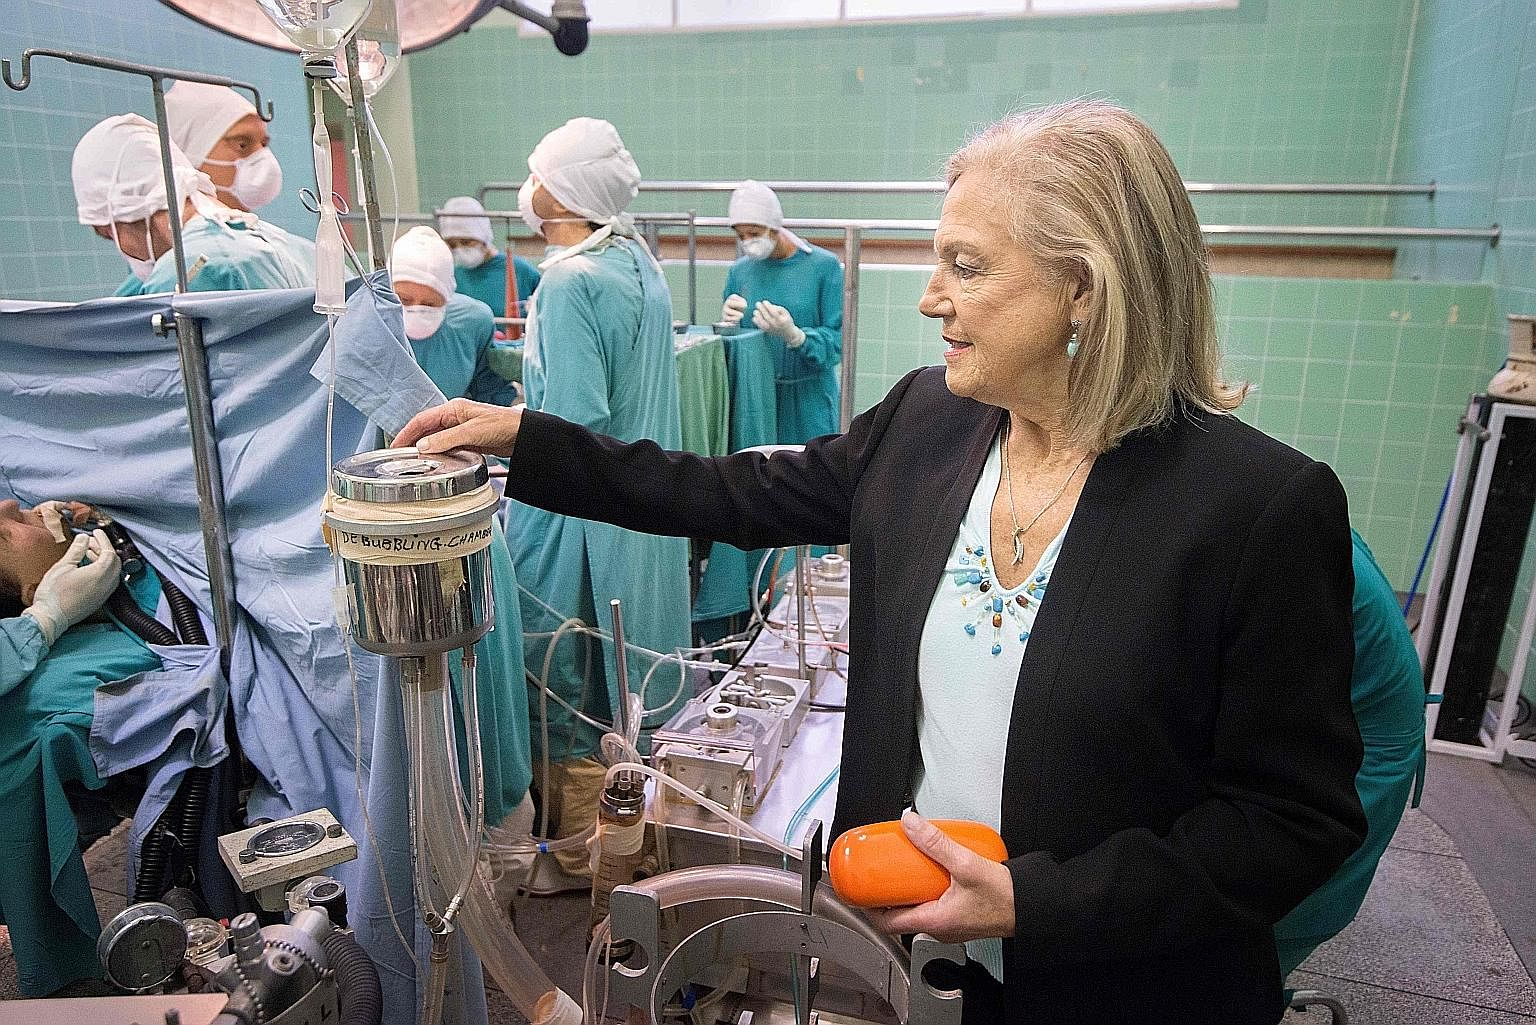 Ms Dene Friedmann, who was a trainee nurse at the world's first heart transplant, at an exhibit recreating that ground-breaking event. Mannequins of Dr Christiaan Barnard with doctors, nurses, and staff, as well as some of the original equipment, are